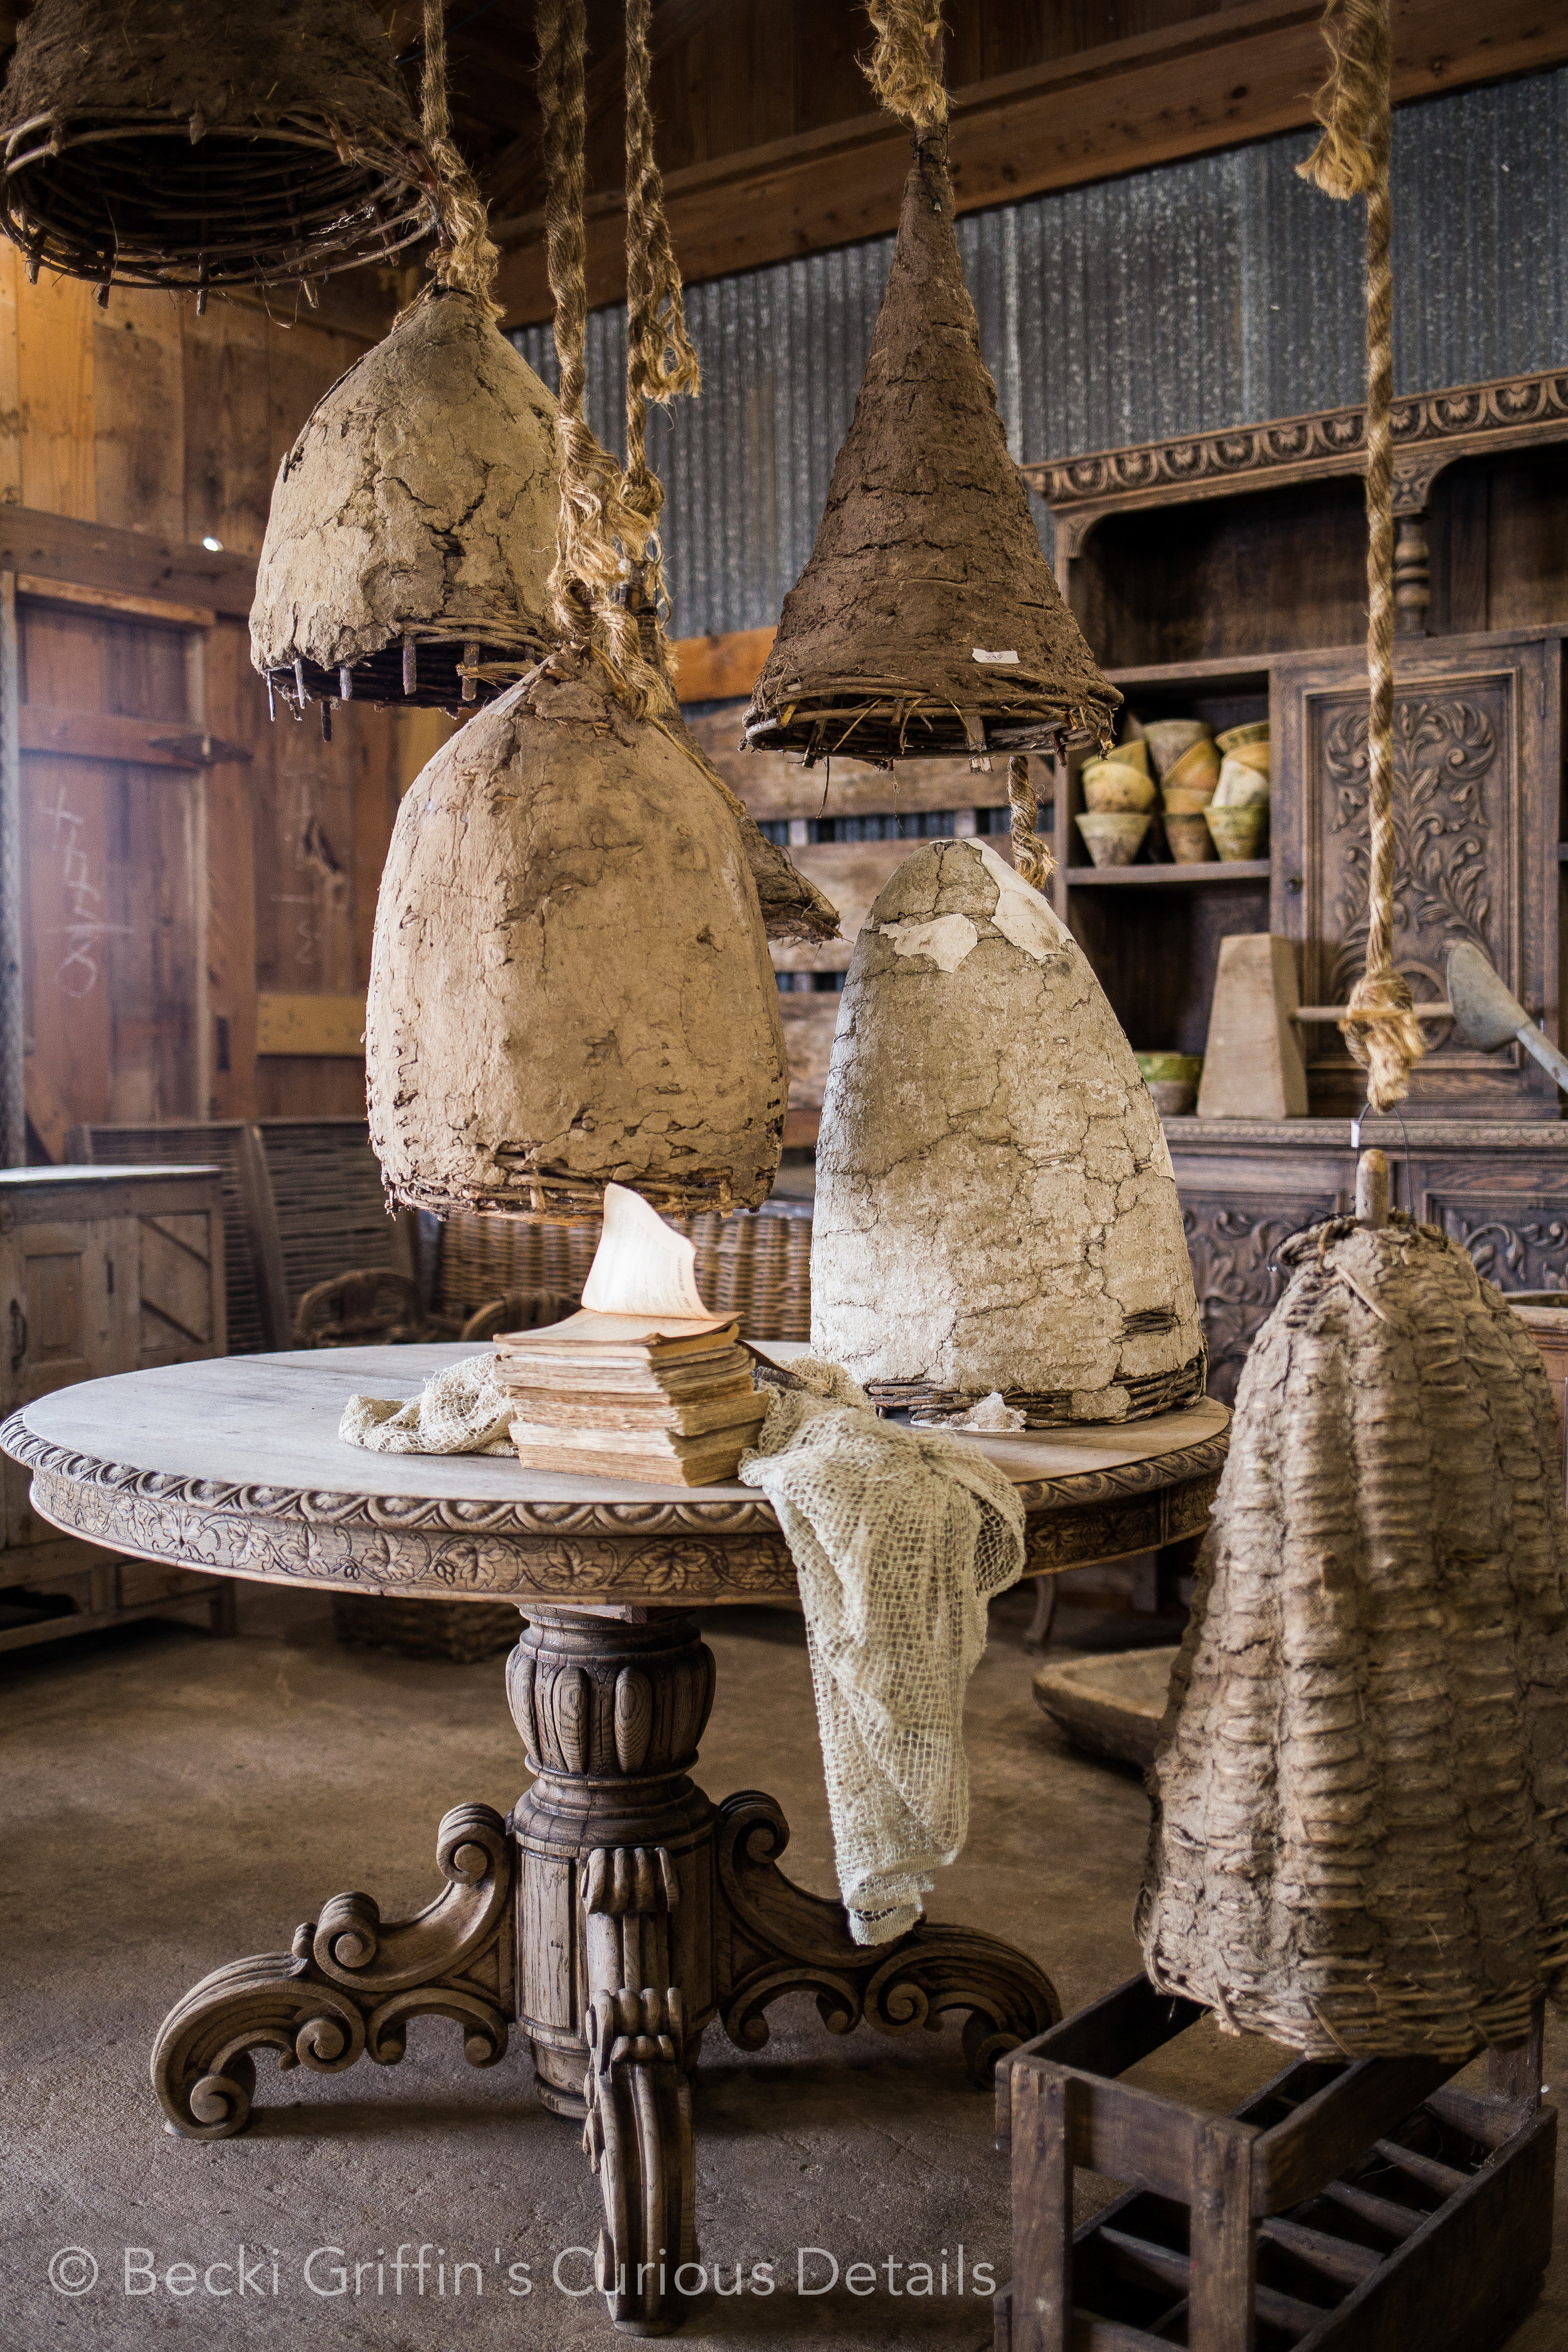 I walked around this collection of antique bee skeps about 47 times, photographing it over and over..making slow motion video. They were so beautiful.